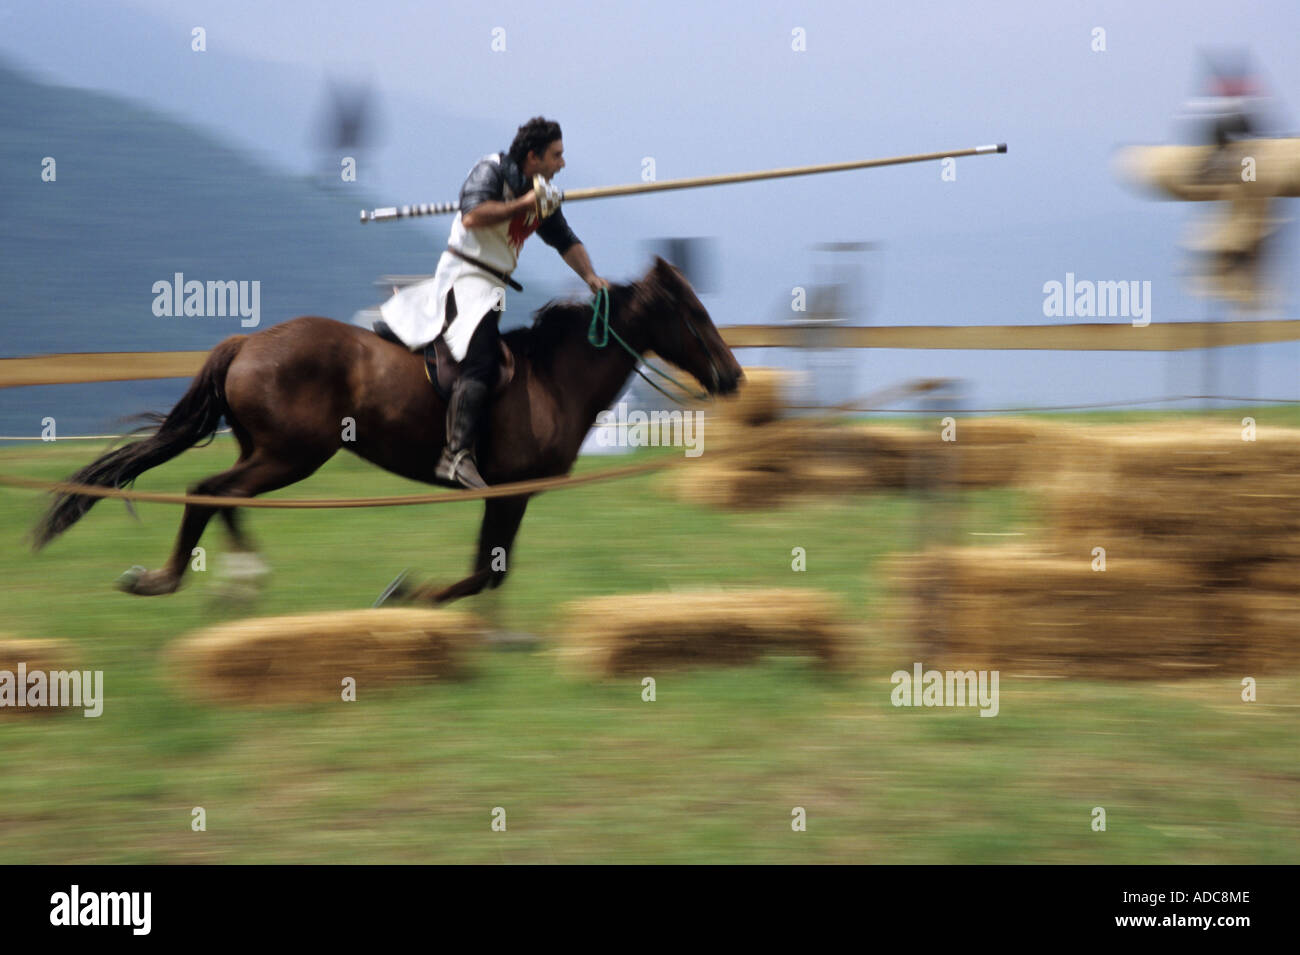 Knights tournament at the traditional historic recall of the Middle Ages, Sale Marasino, Italy - Stock Image